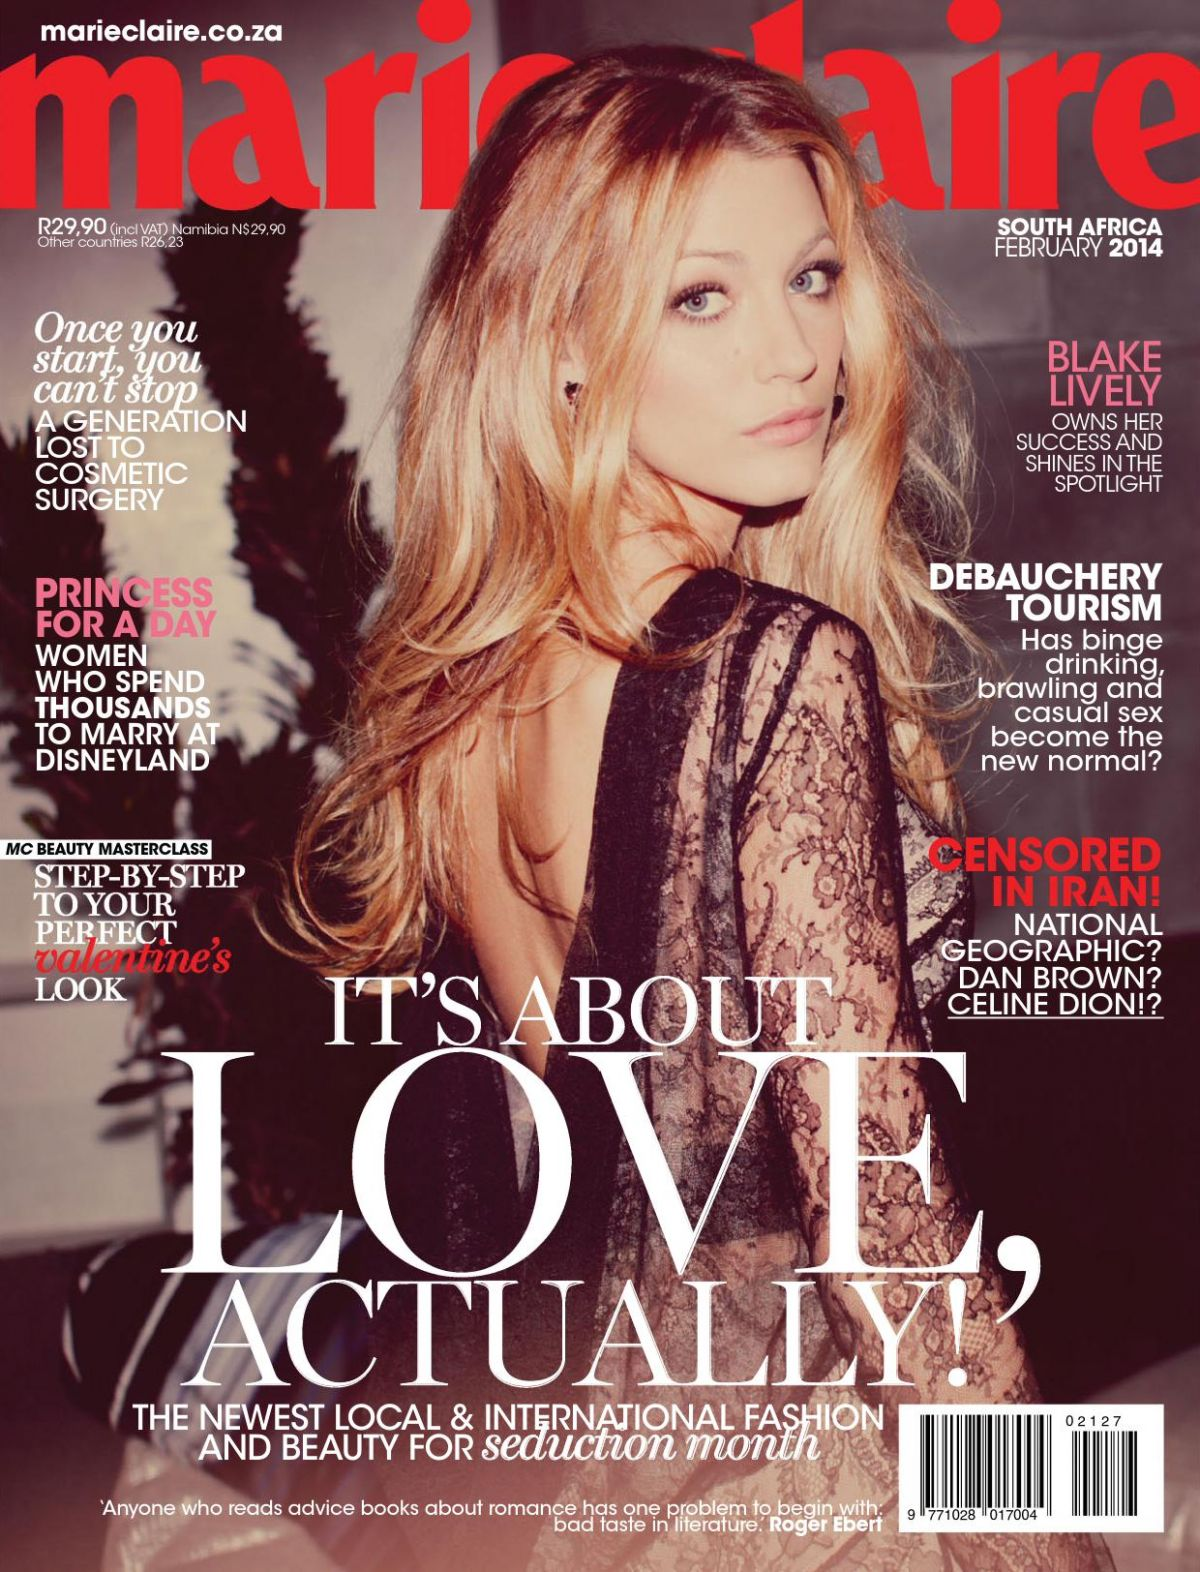 BLAKE LIVELY in Marie Claire Magazine, South Africa February 2014 Issue